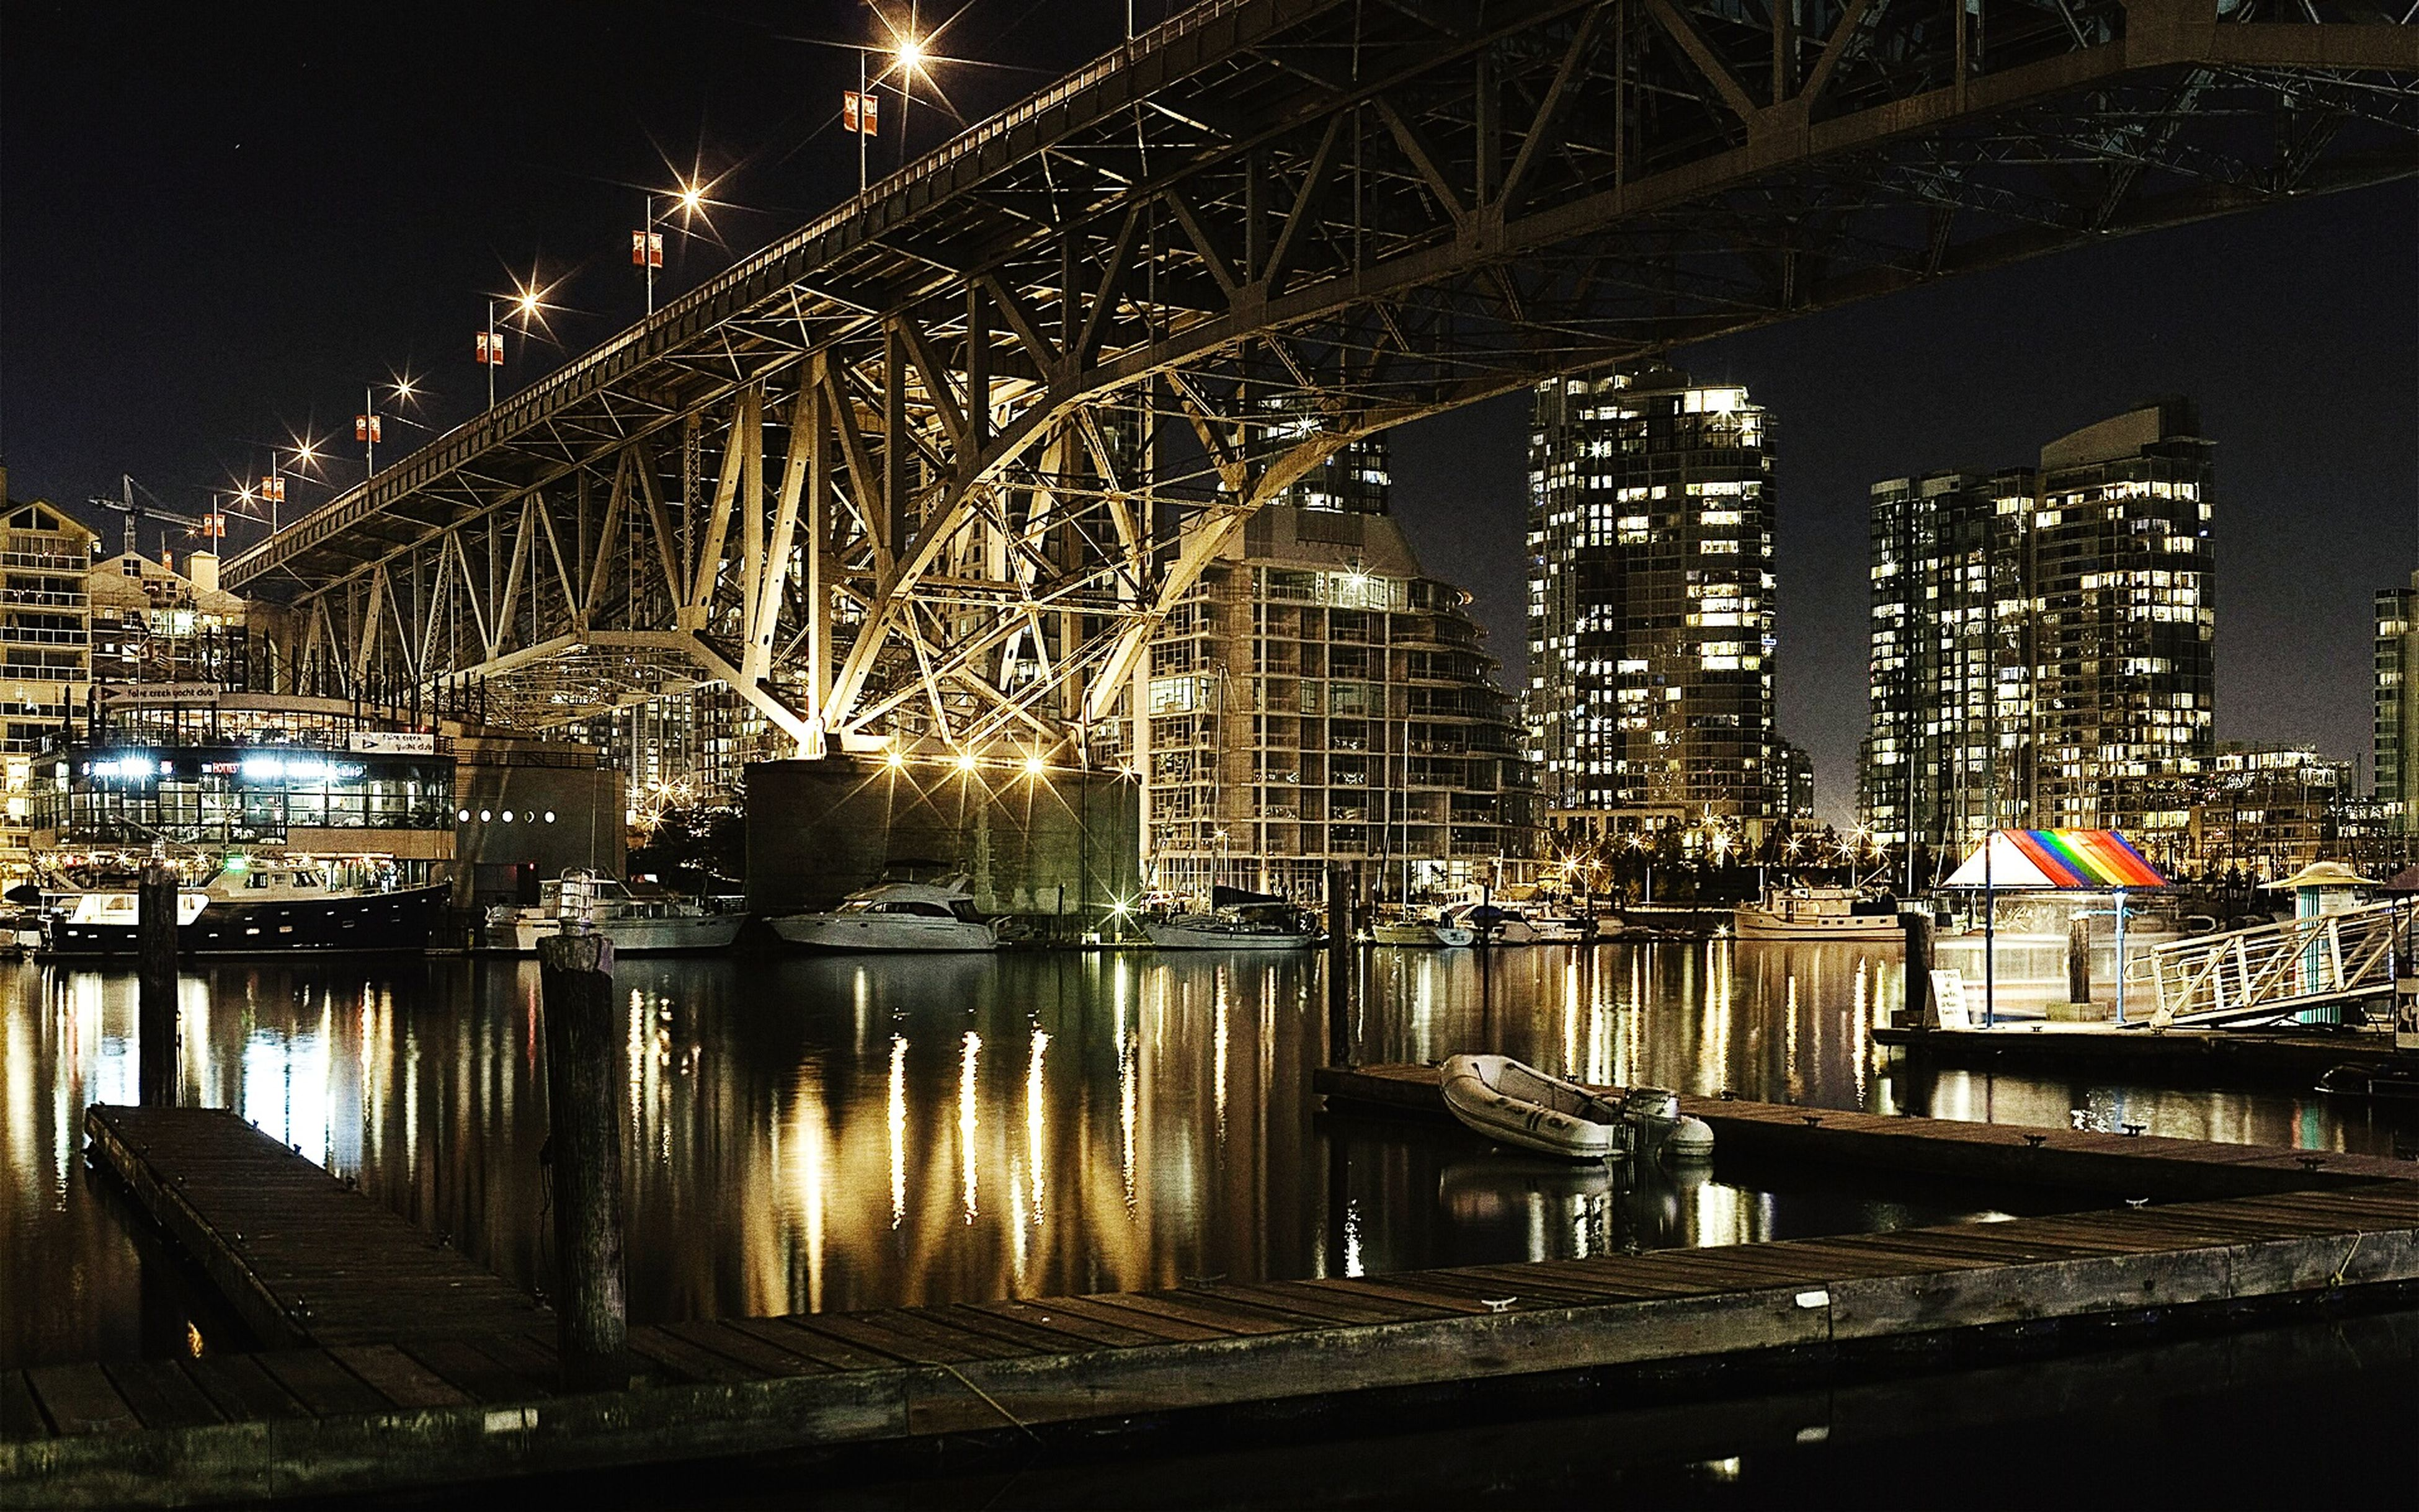 built structure, night, architecture, illuminated, bridge - man made structure, water, connection, river, no people, reflection, building exterior, transportation, travel destinations, city, outdoors, sky, nautical vessel